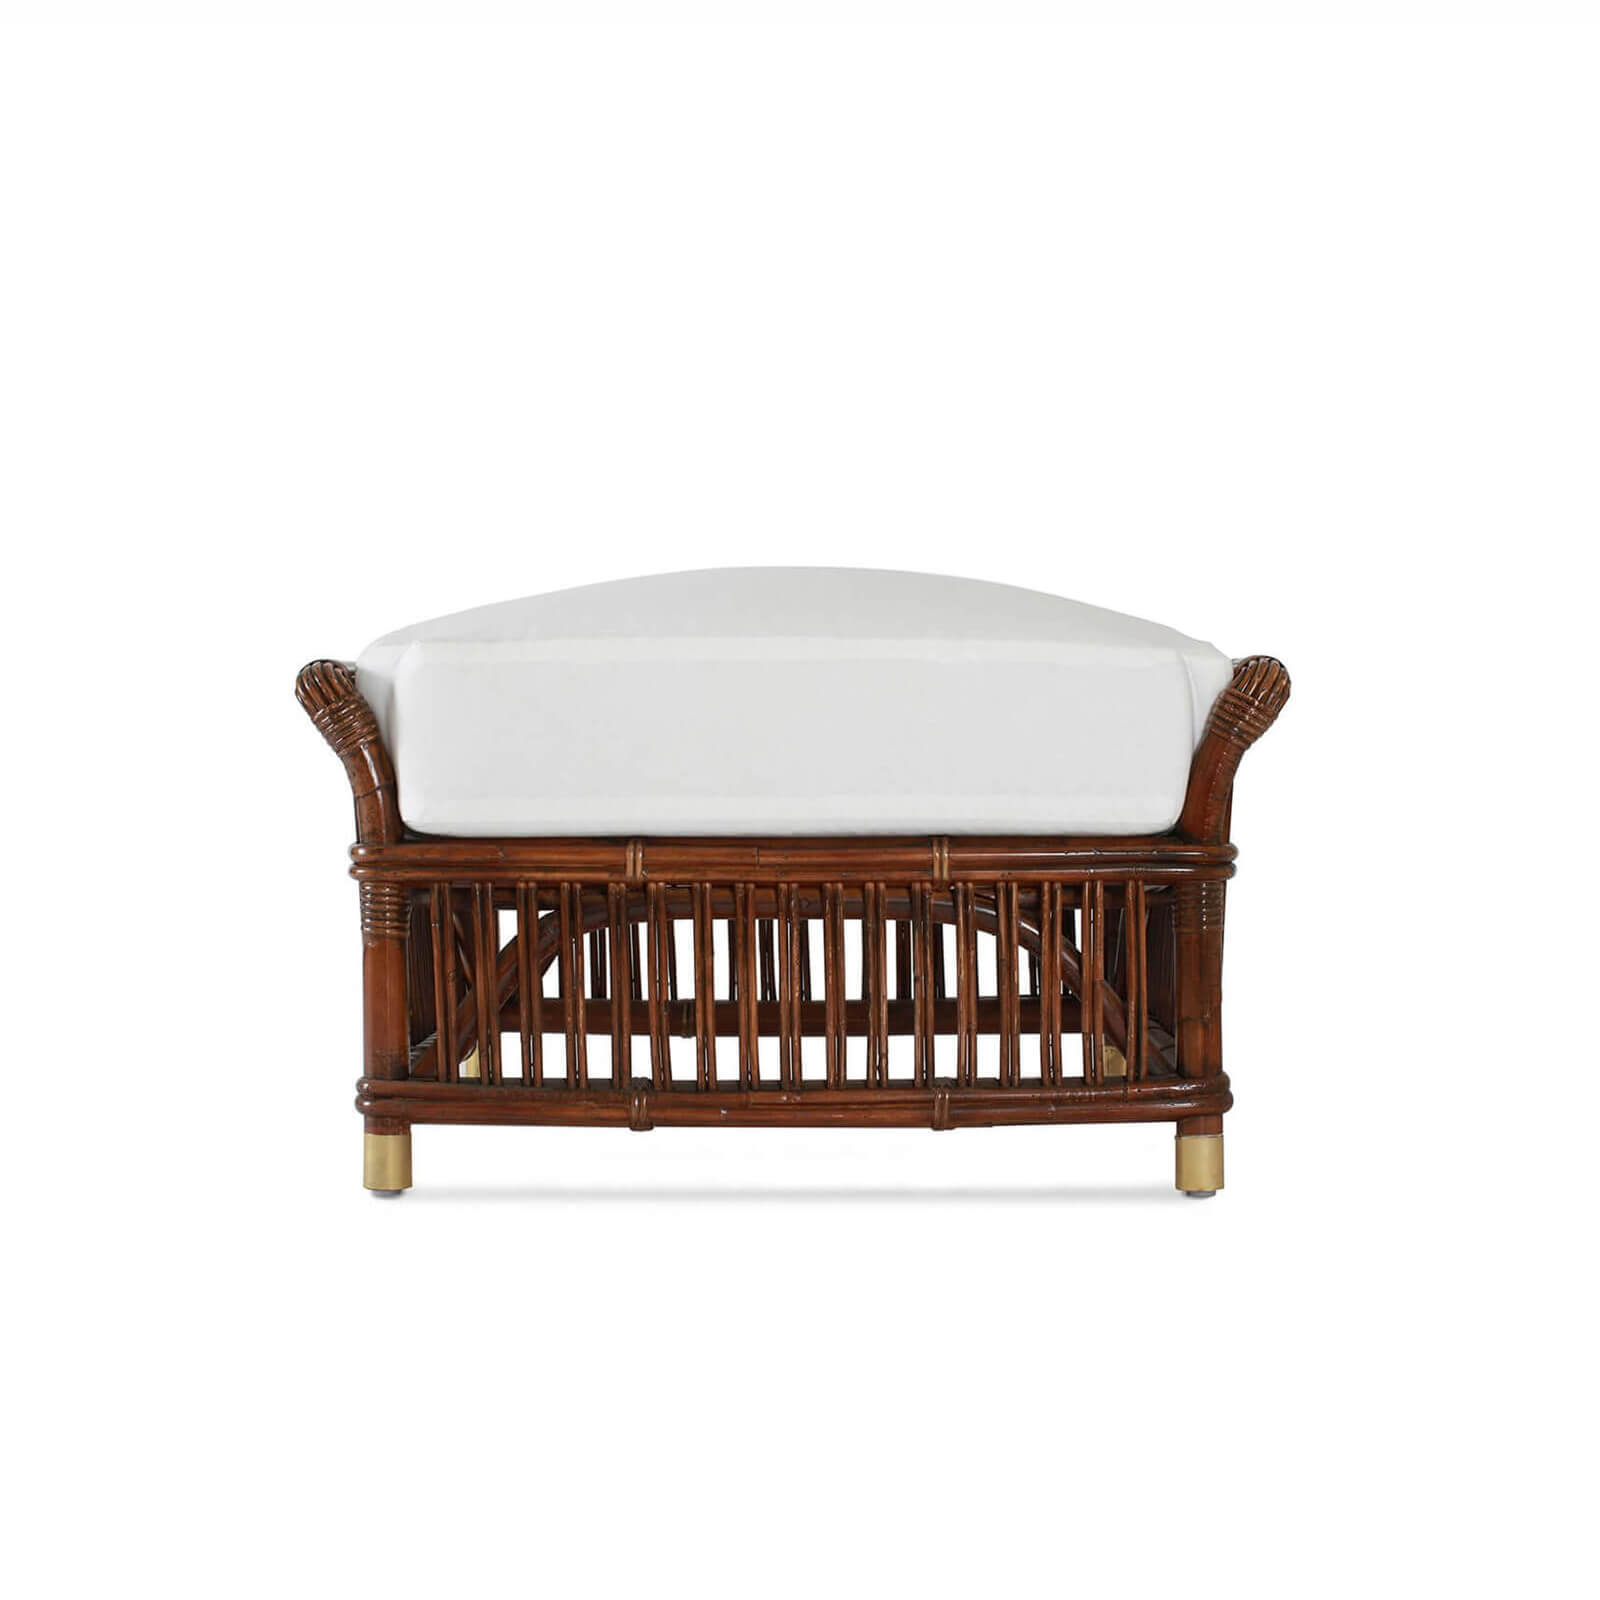 PARROT CAY OTTOMAN 2 - STUART MEMBERY HOME COLLECTION